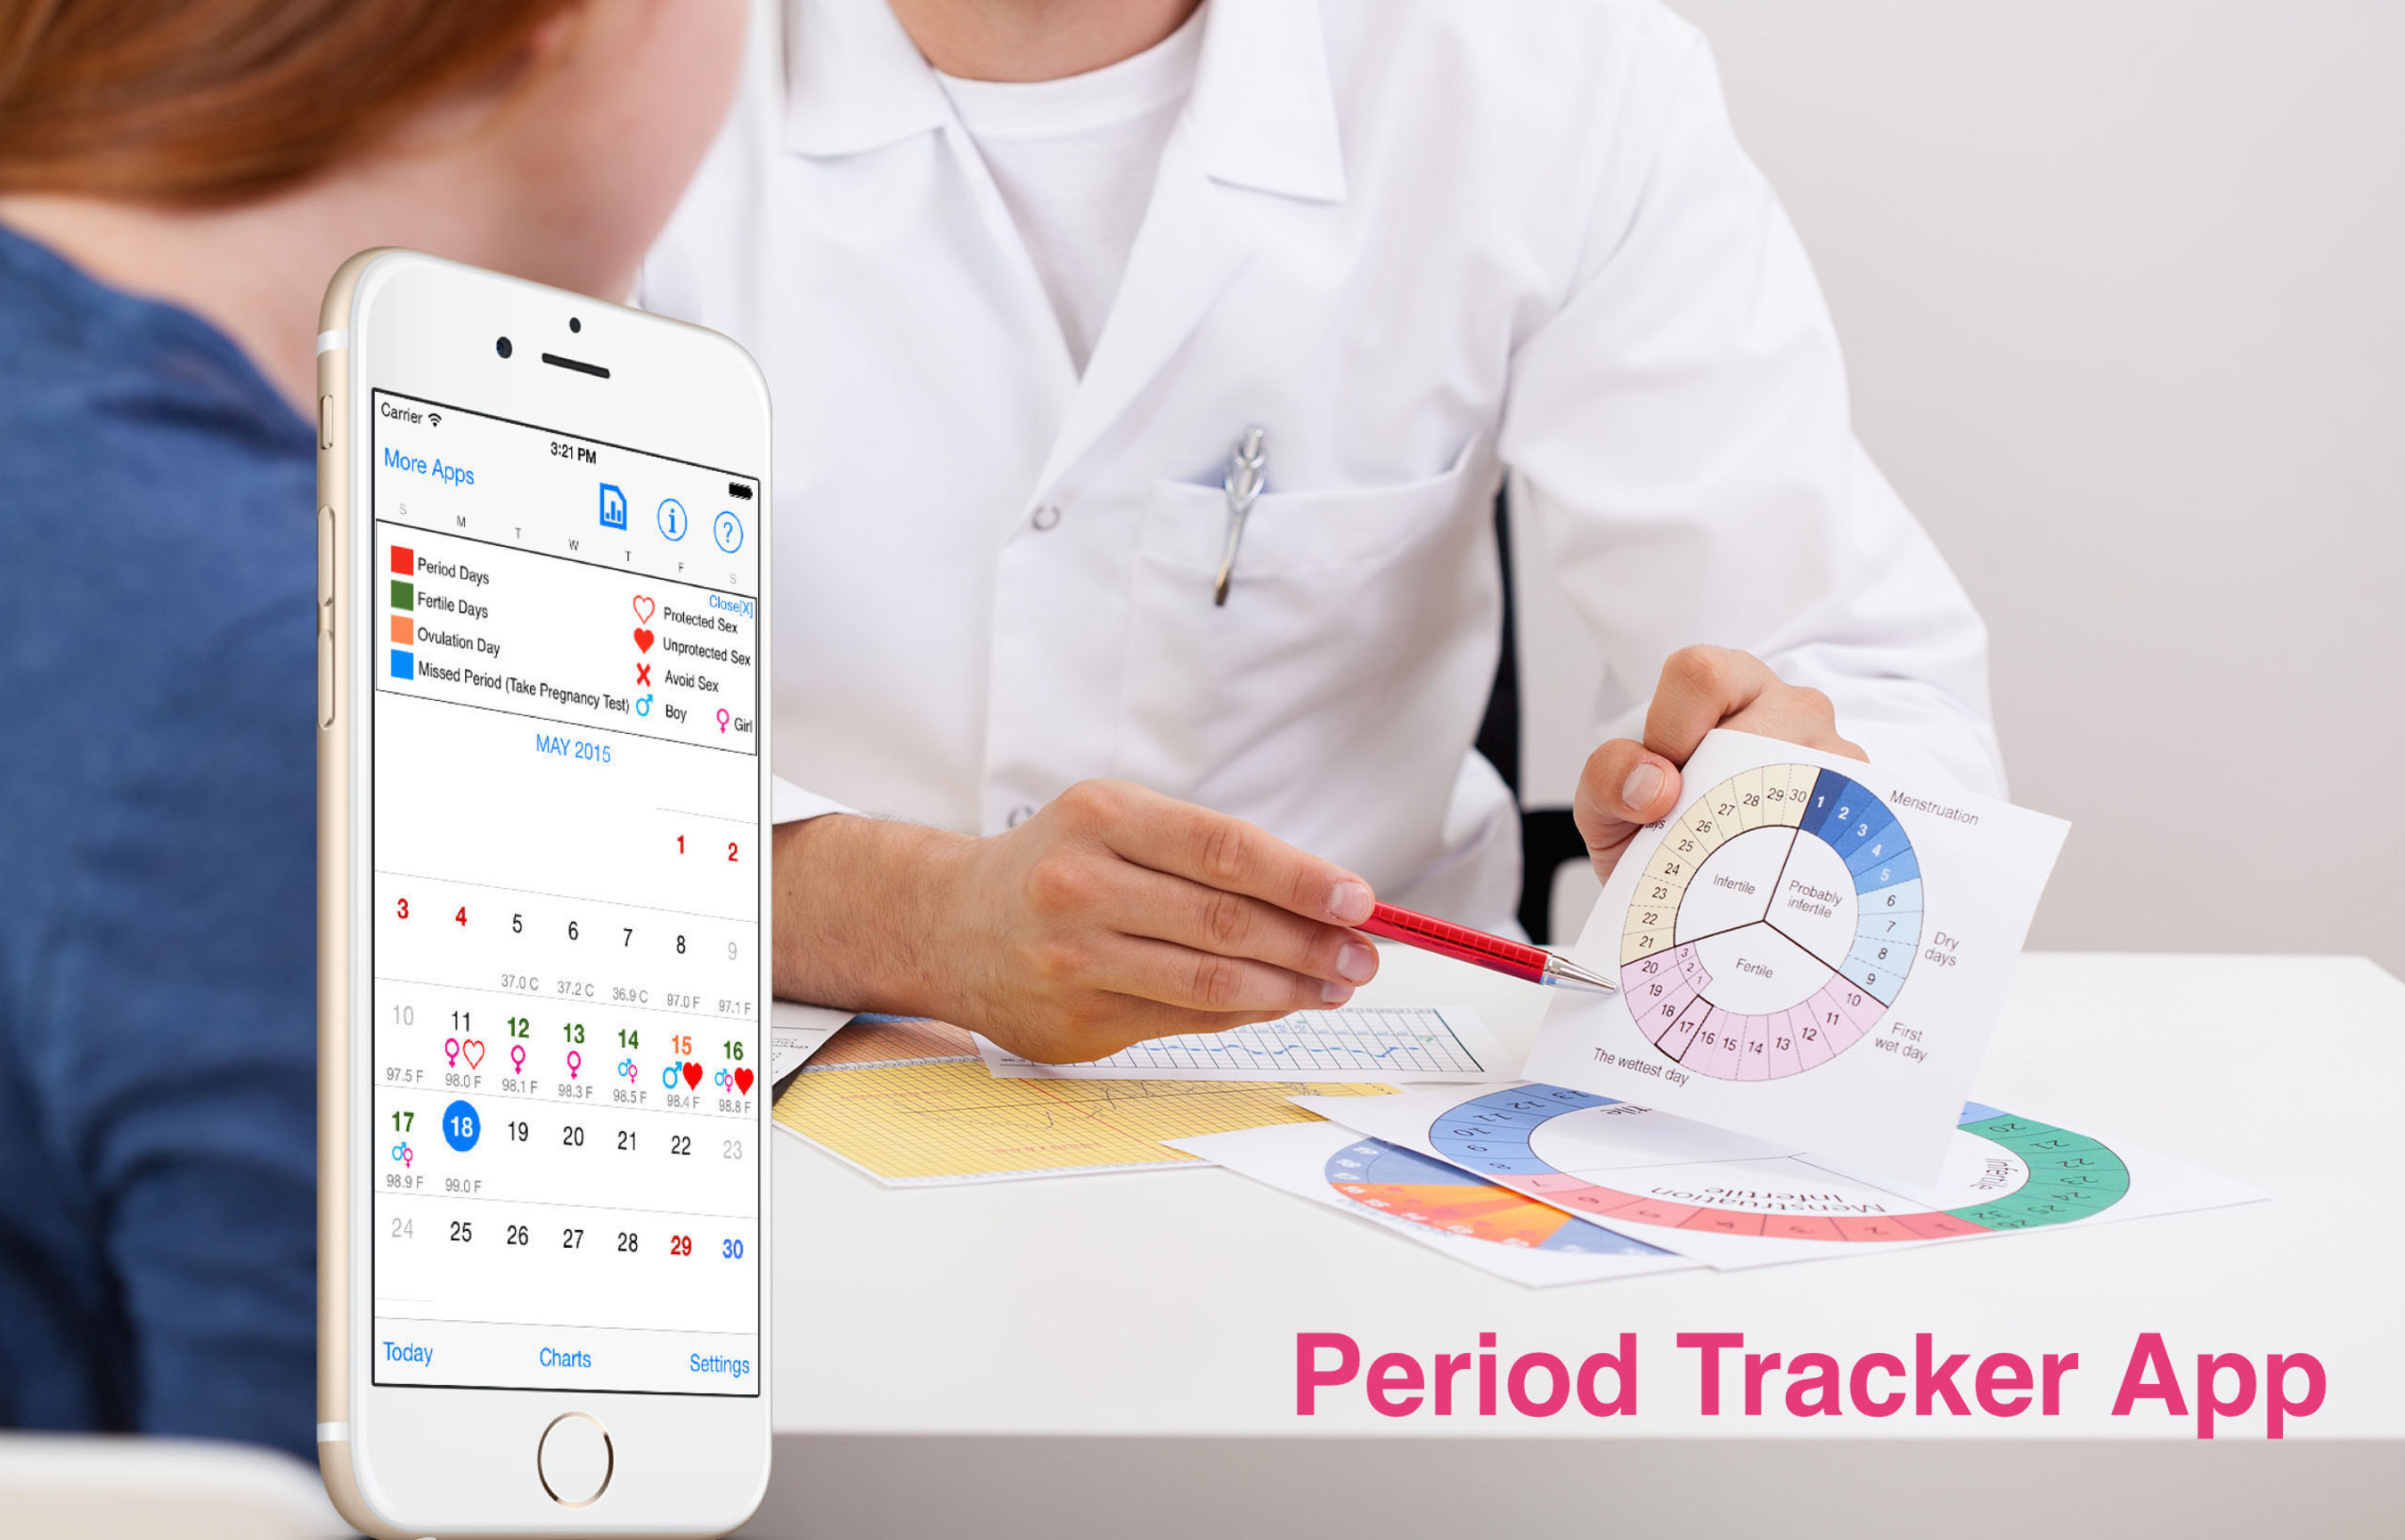 Period Tracker: New iOS App Makes Accurate Calculations and 100% Data Privacy A Reality